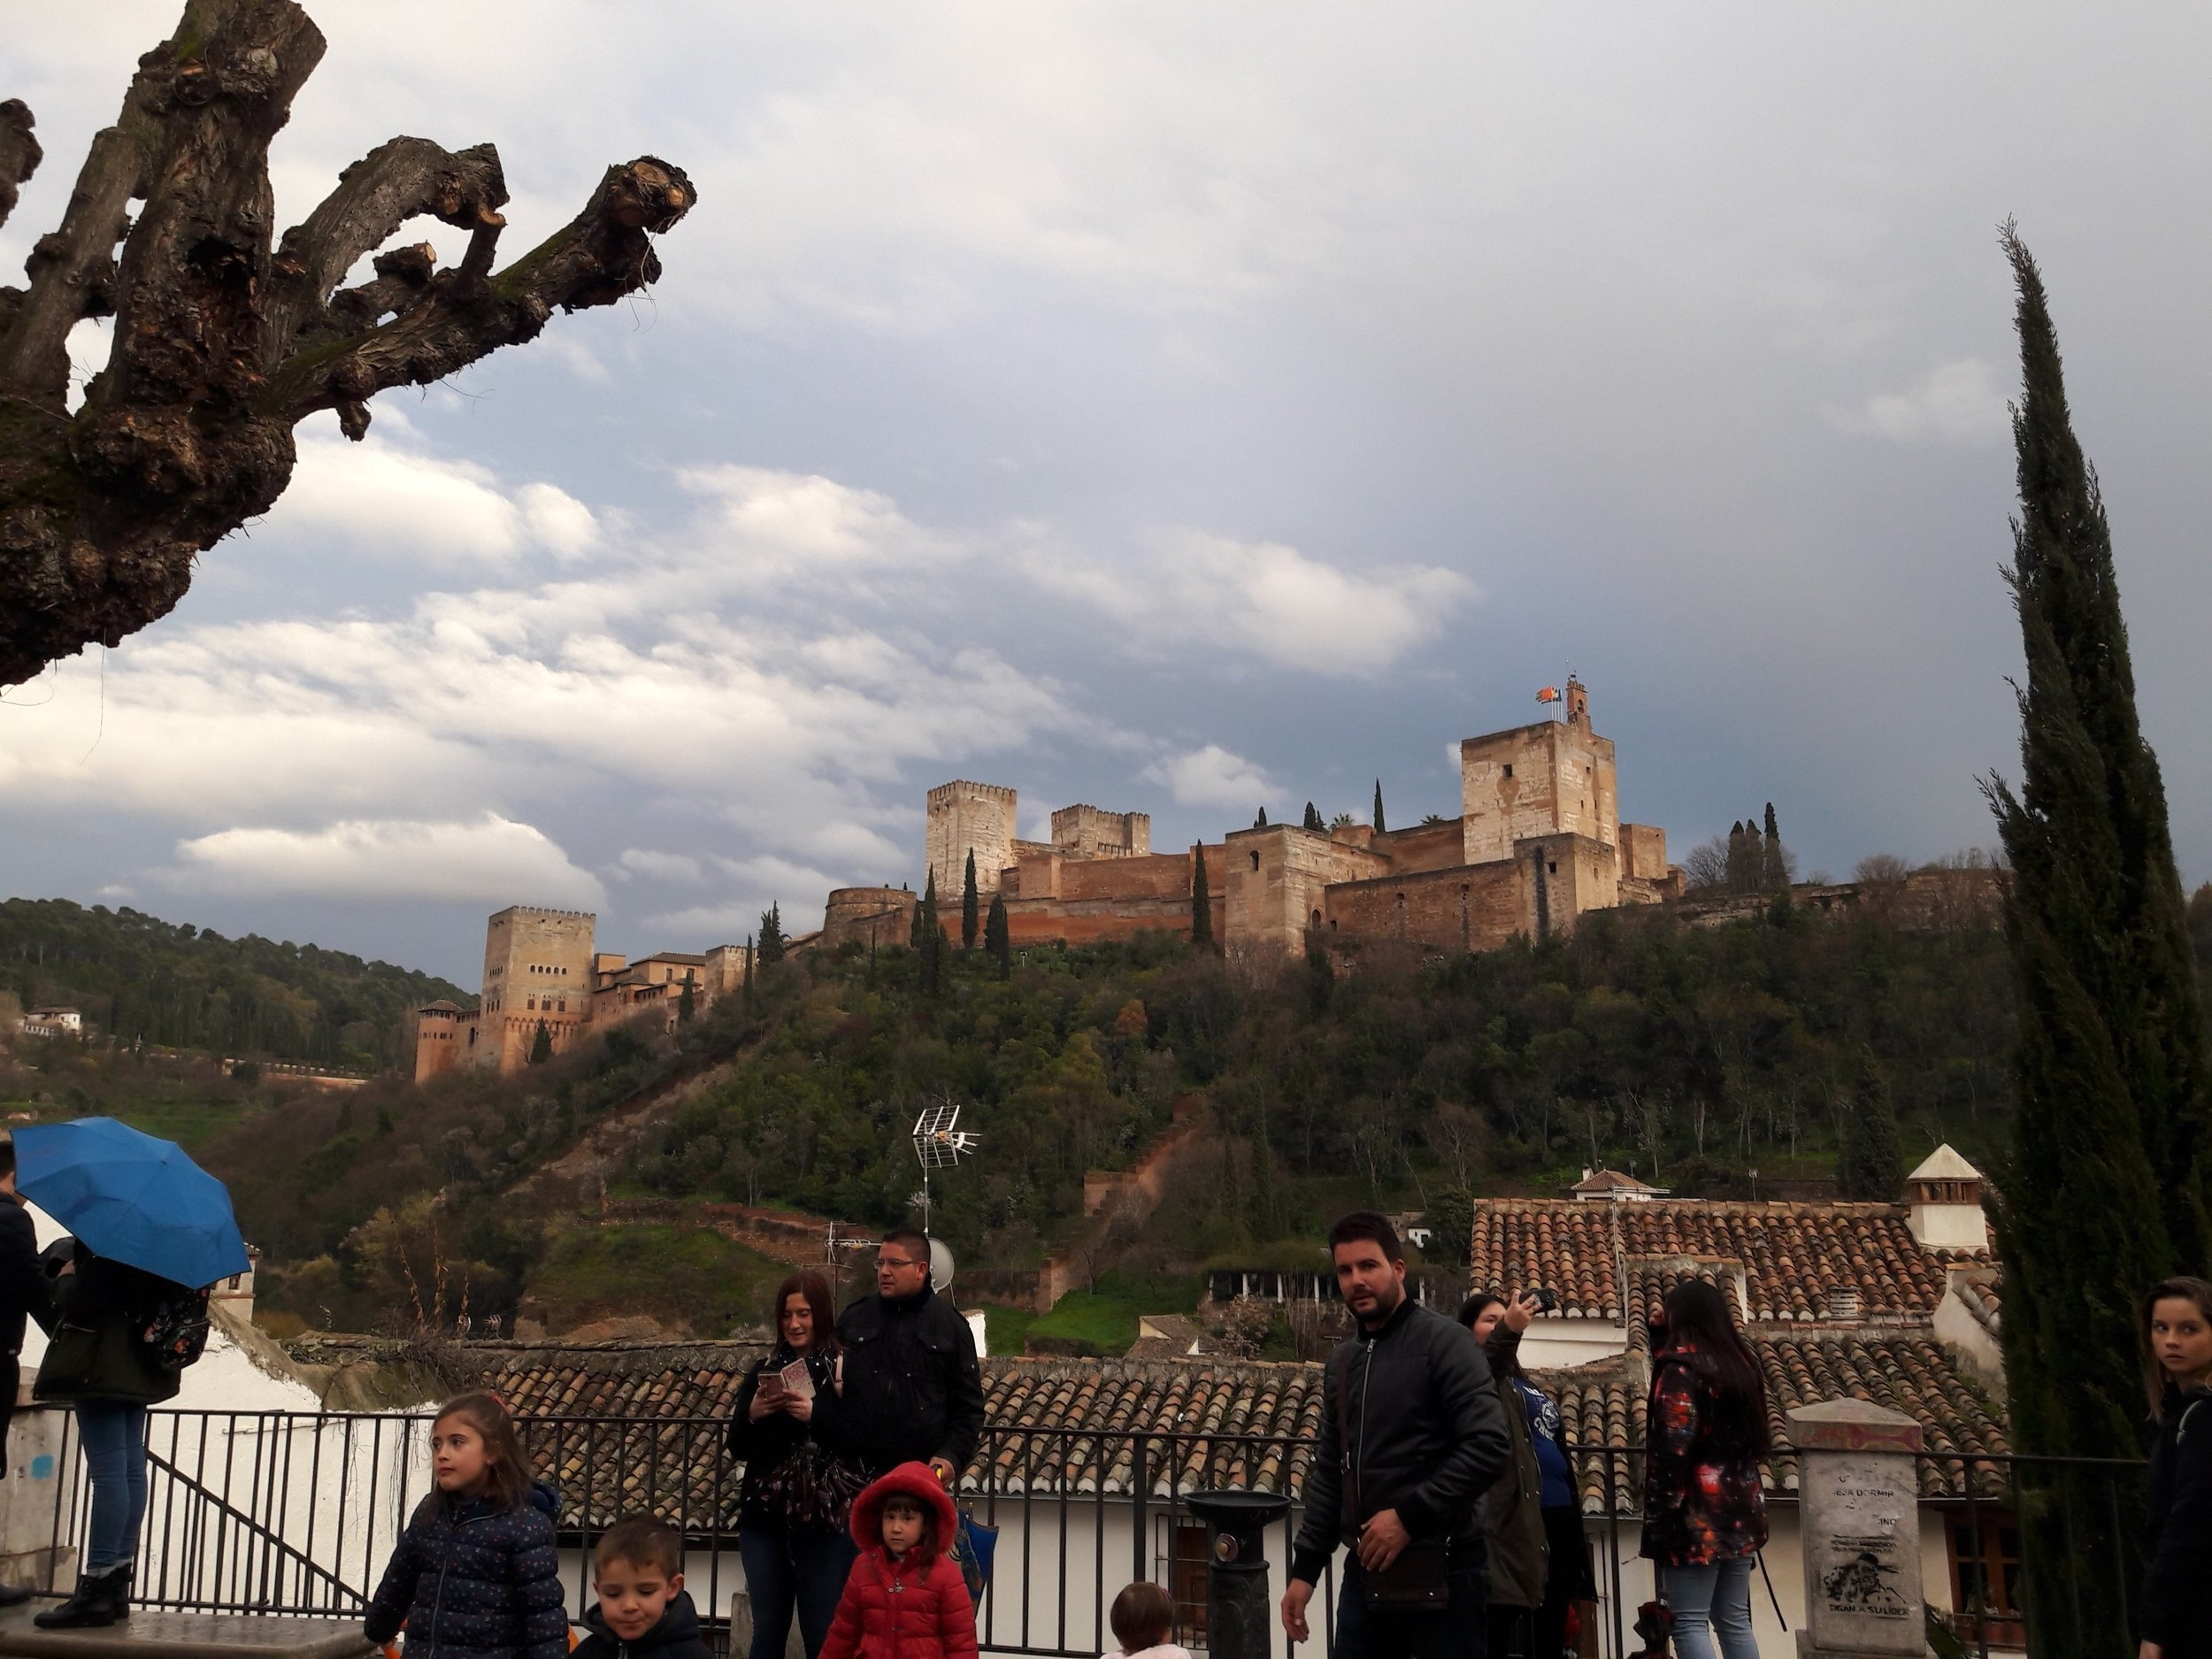 For me, there's nothing like capturing one more shot of the Alhambra (especially after a contemplative wander on my own).